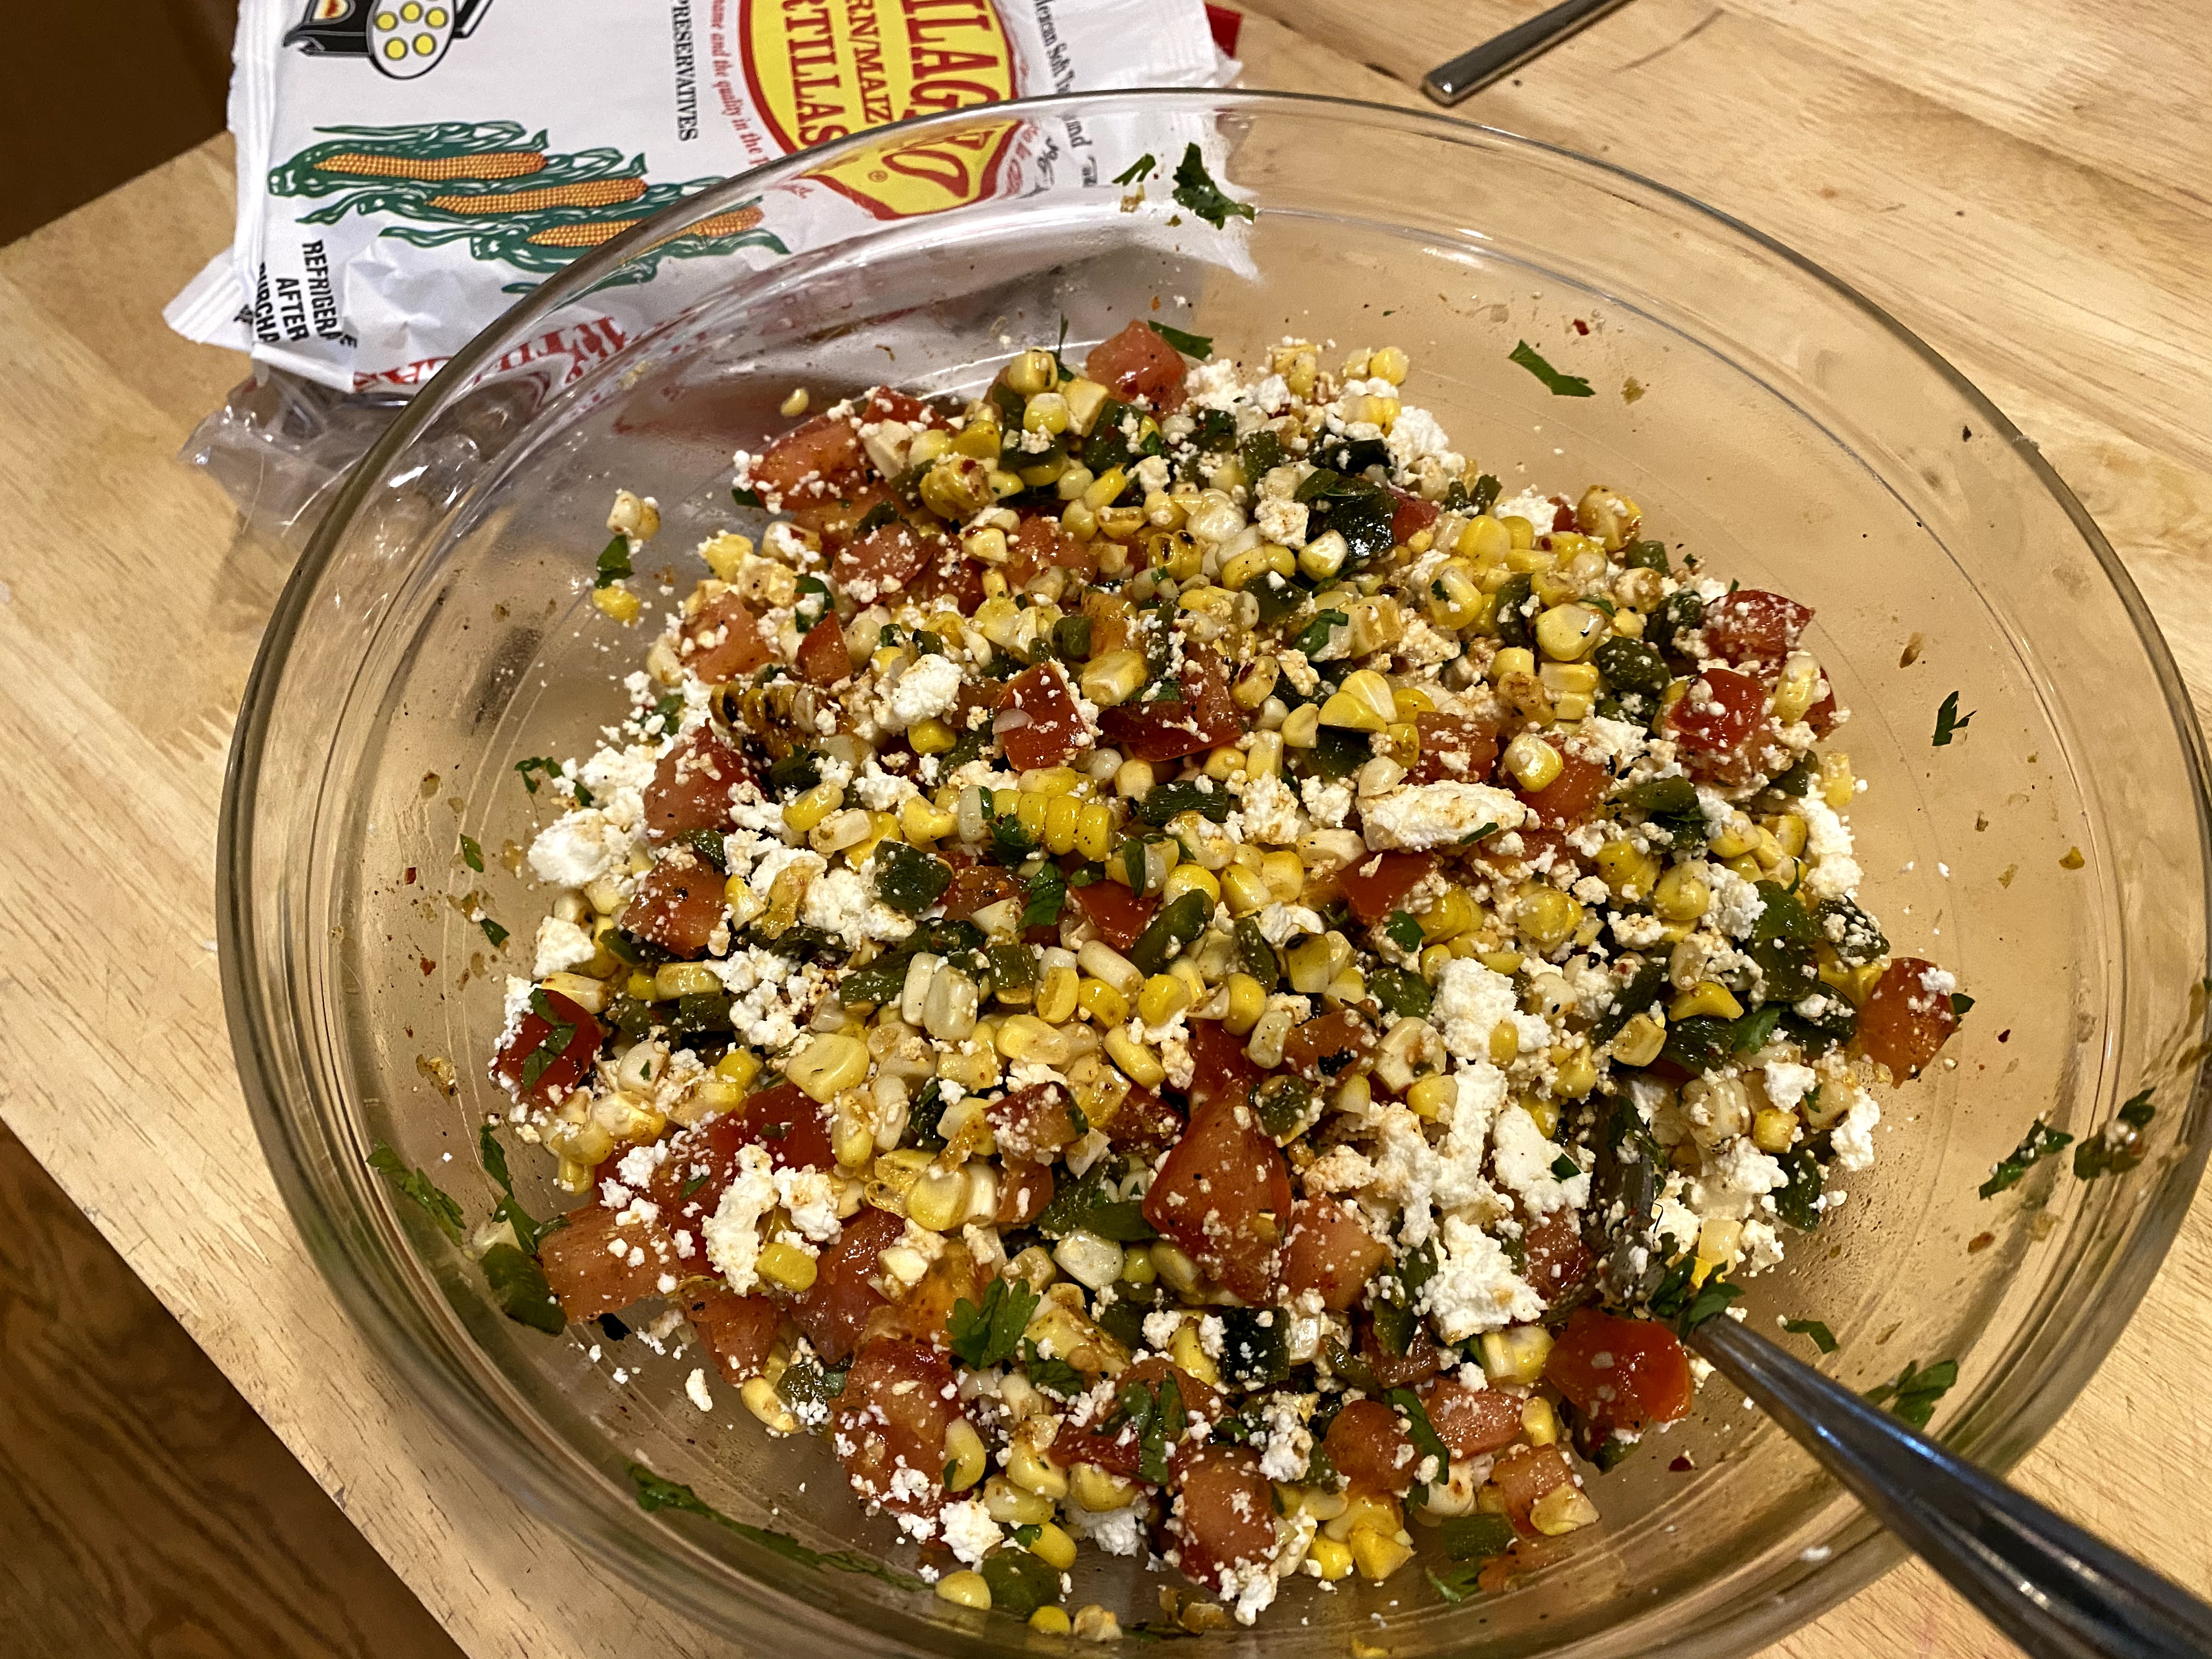 Grilled Corn Salad with Tomatoes, Roasted Poblano Peppers and Queso Fresco